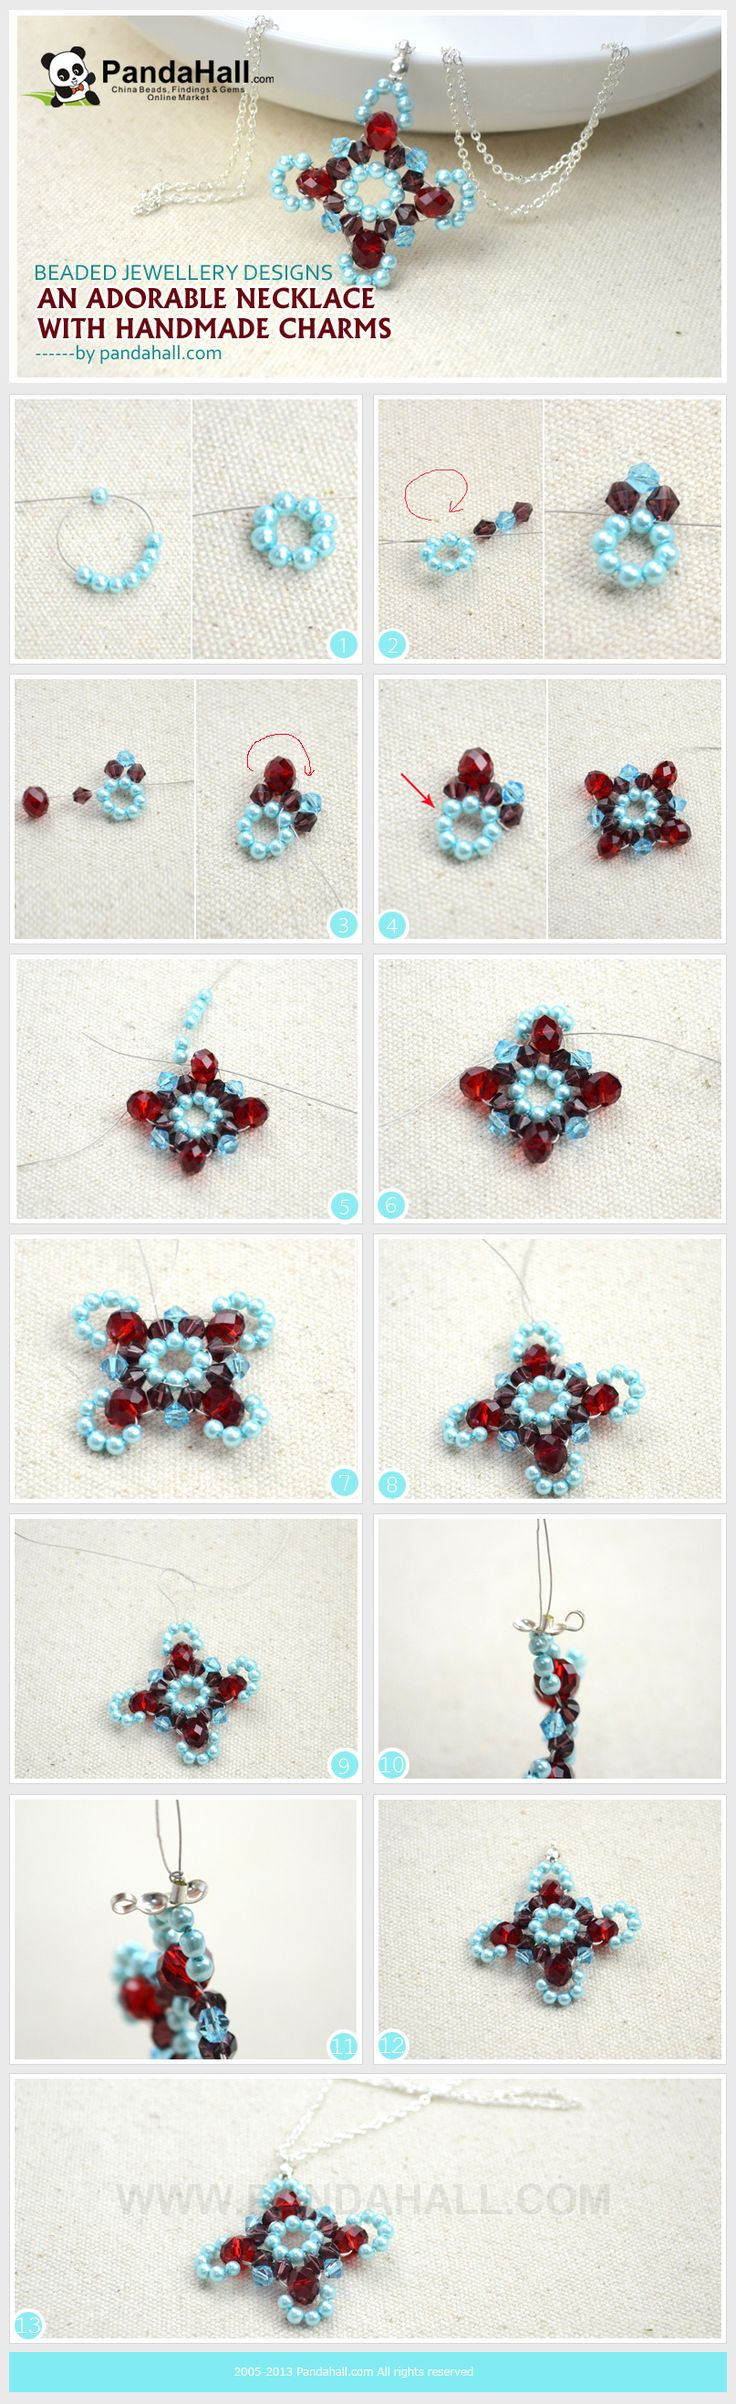 This new tutorial is all about beaded jewellery designs! You will learn how to turn inexpensive beads into a special project, such as this handmade charm. Each step is detailed with photos and explanations.